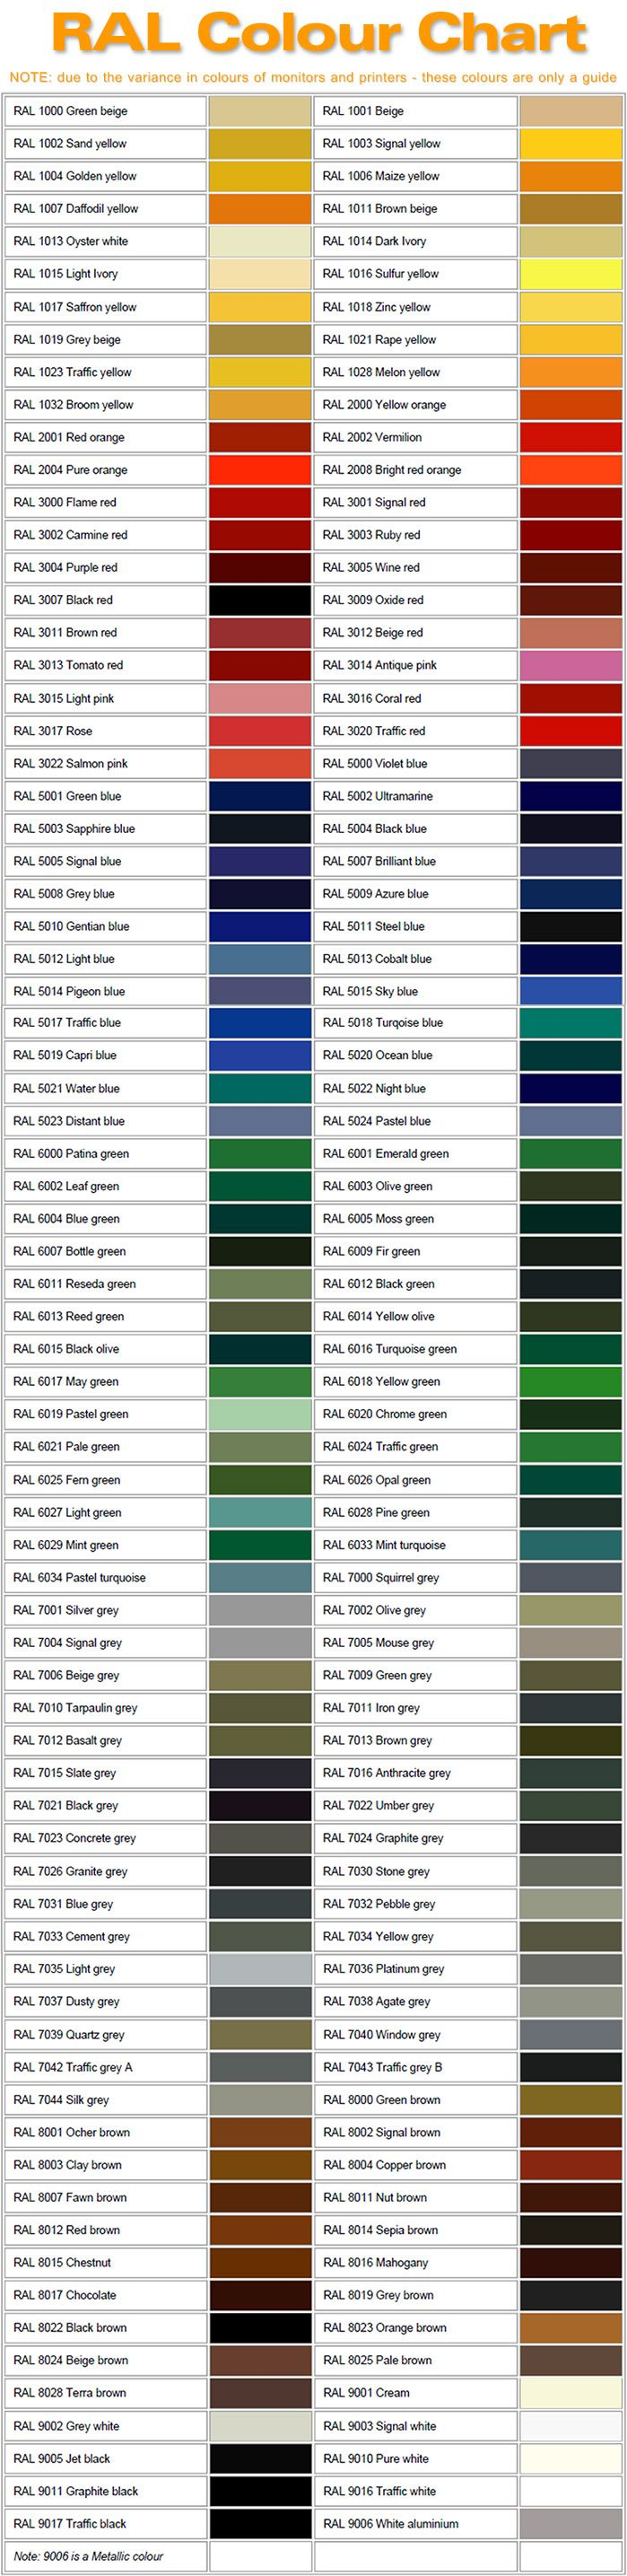 How to Choose a Colour Scheme with Colour Wheels and RAL Charts